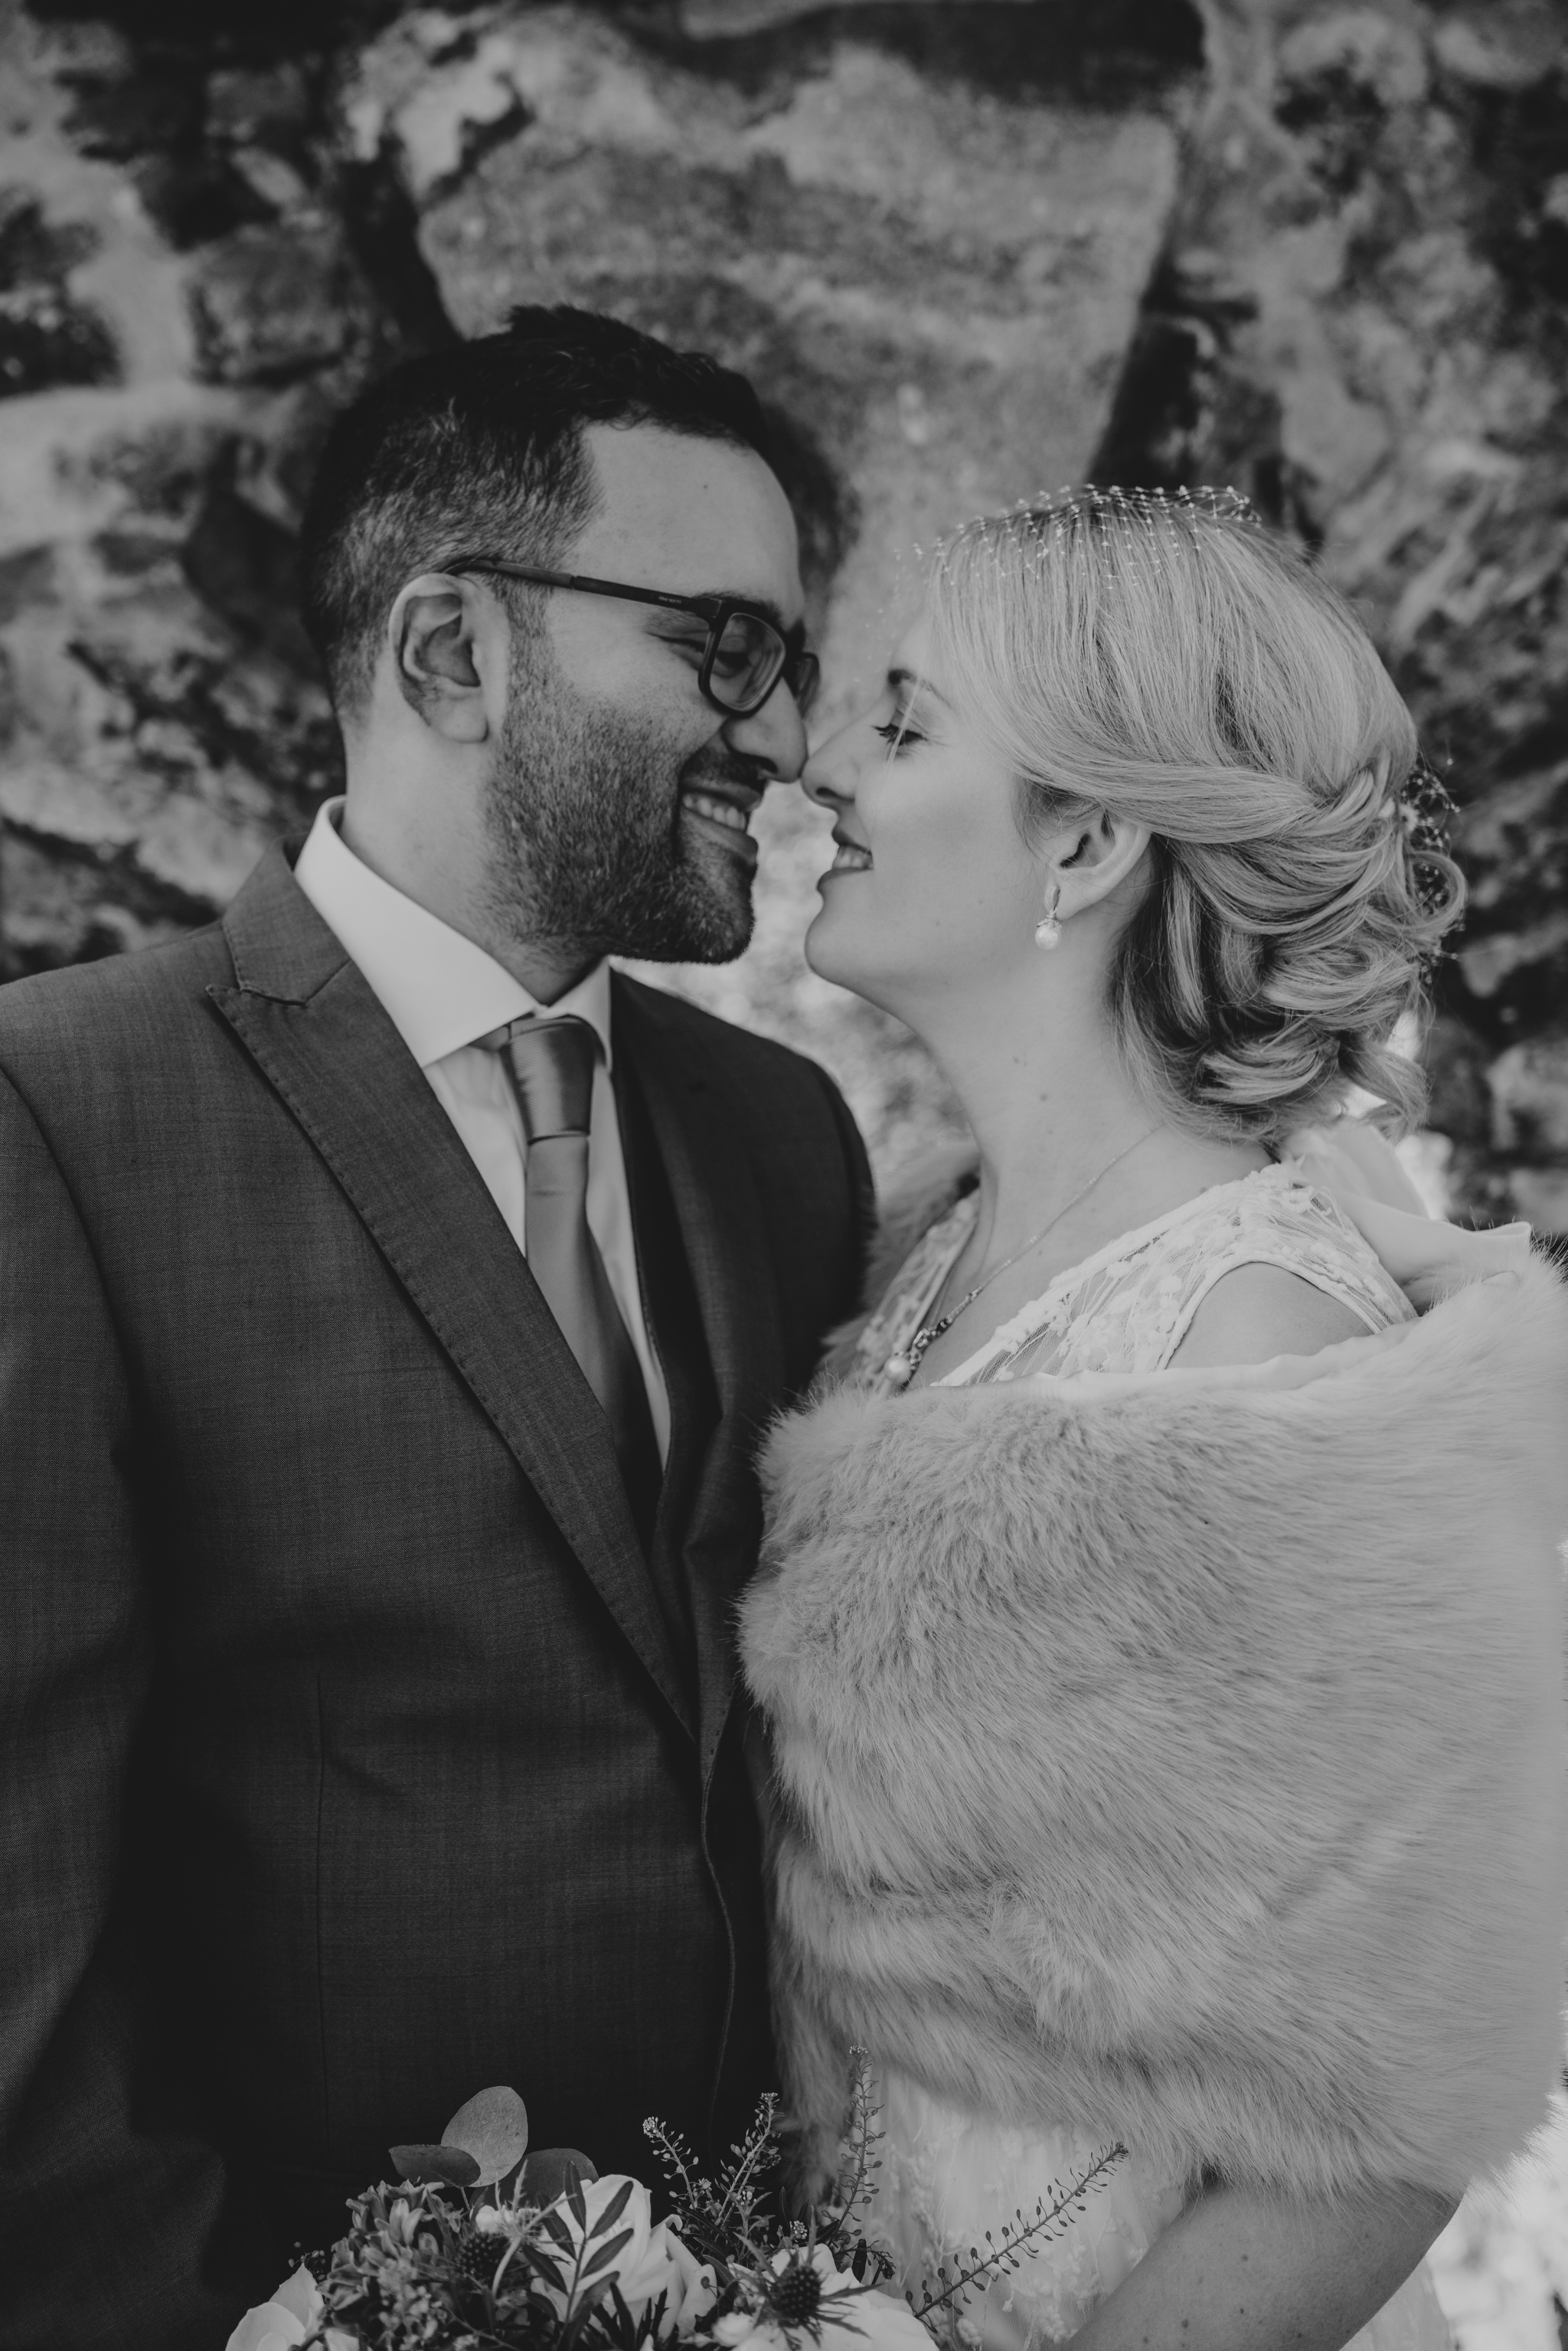 rhian-ali-colchester-essex-town-elopement-alternative-wedding-photographer-grace-elizabeth-essex-suffolk-norfolk-devon (61 of 81).jpg